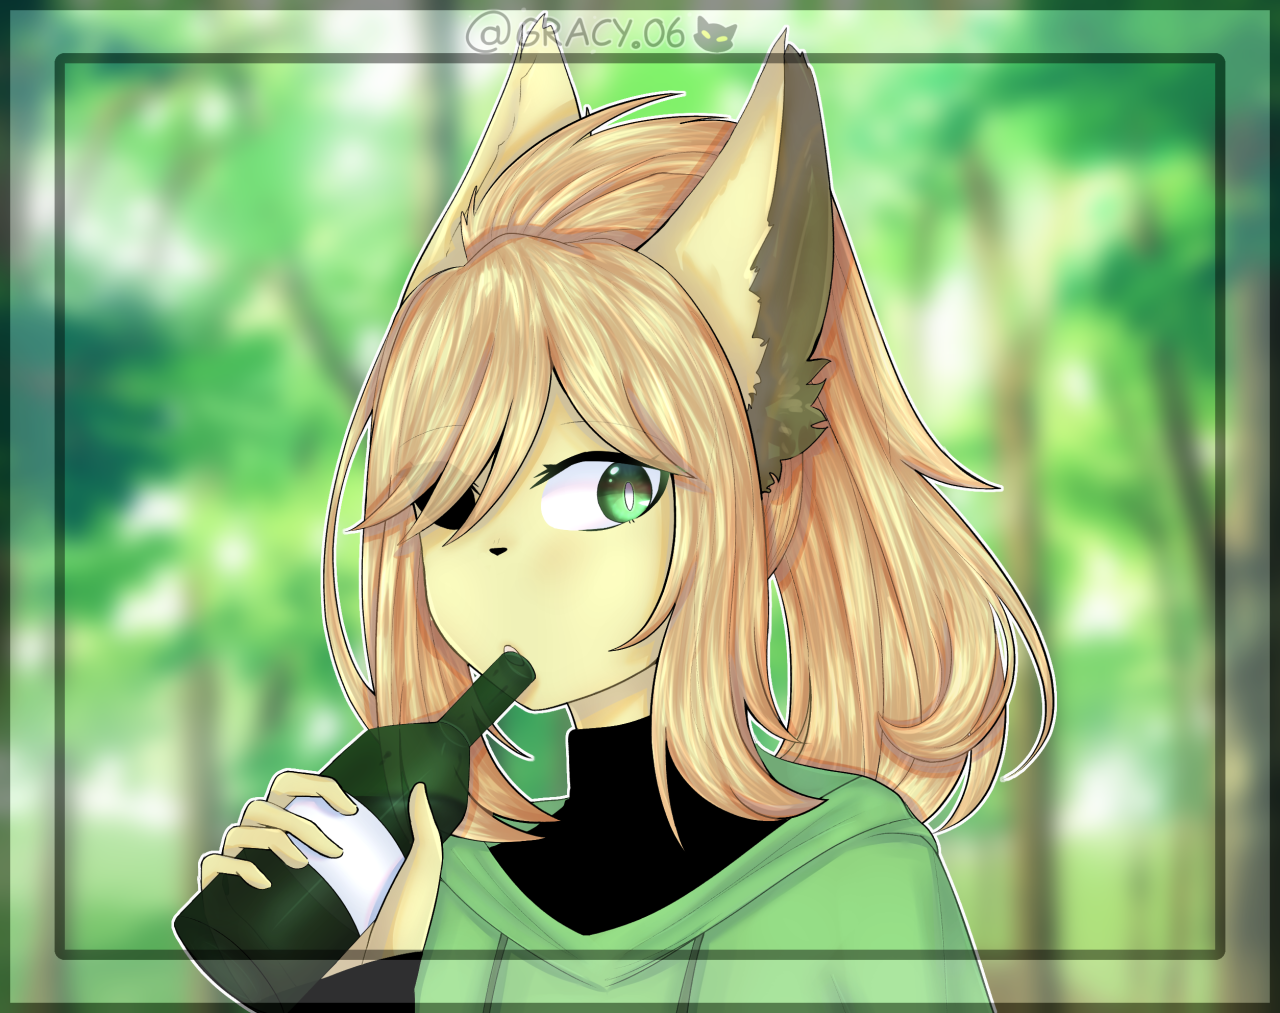 . . A.T w/ @blue_leaff66 . . . 1- Instagram 2- Devintart . . . (2 posts in 1 day hmmm….) #art trade#Illustration#furry#digital art#sketch #clip studio paint #orginal drawing#hear#colouring#lineart#Forest#yellow#green